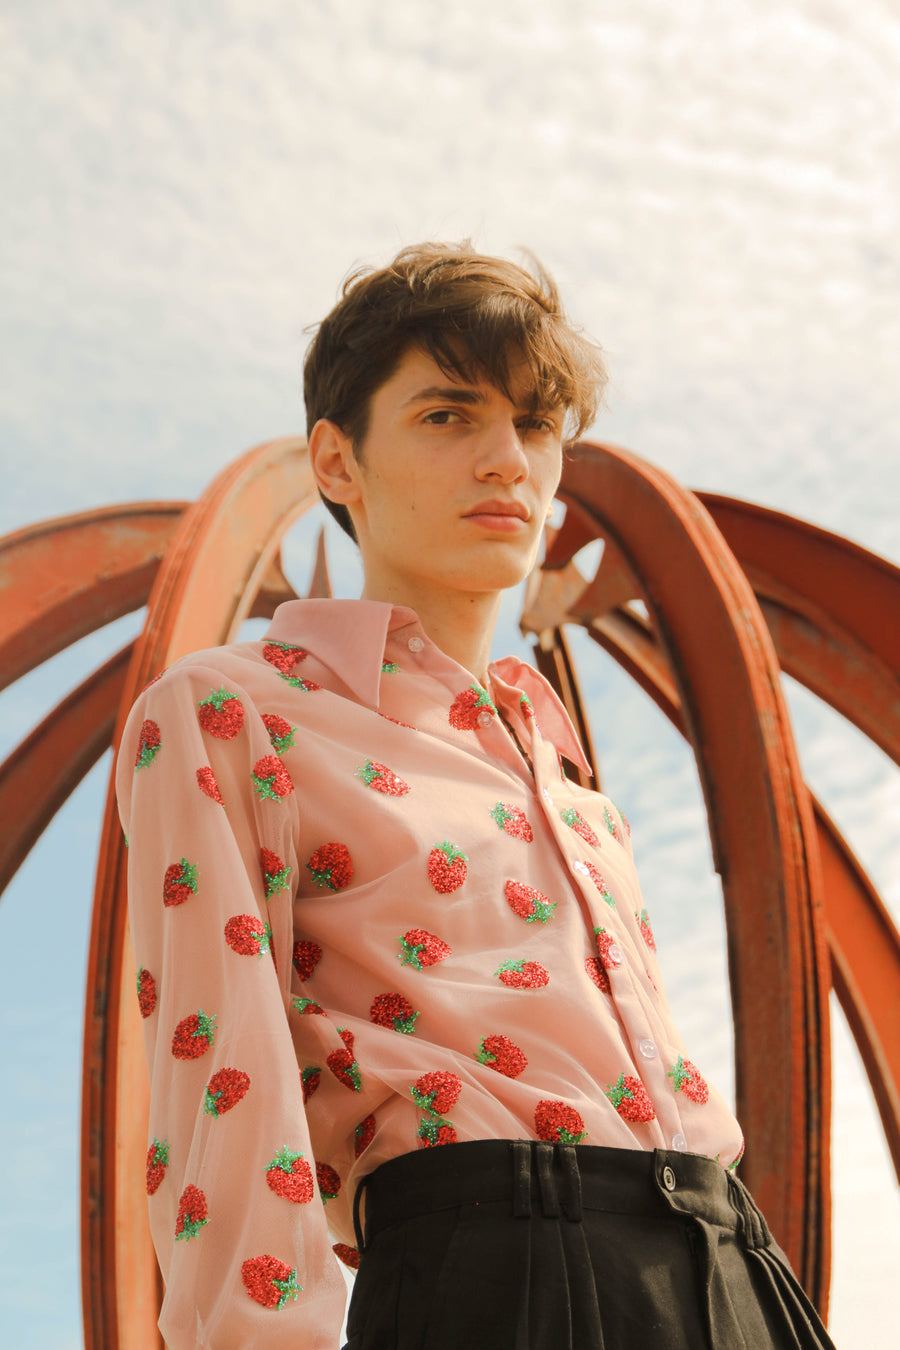 Strawberry Shirt